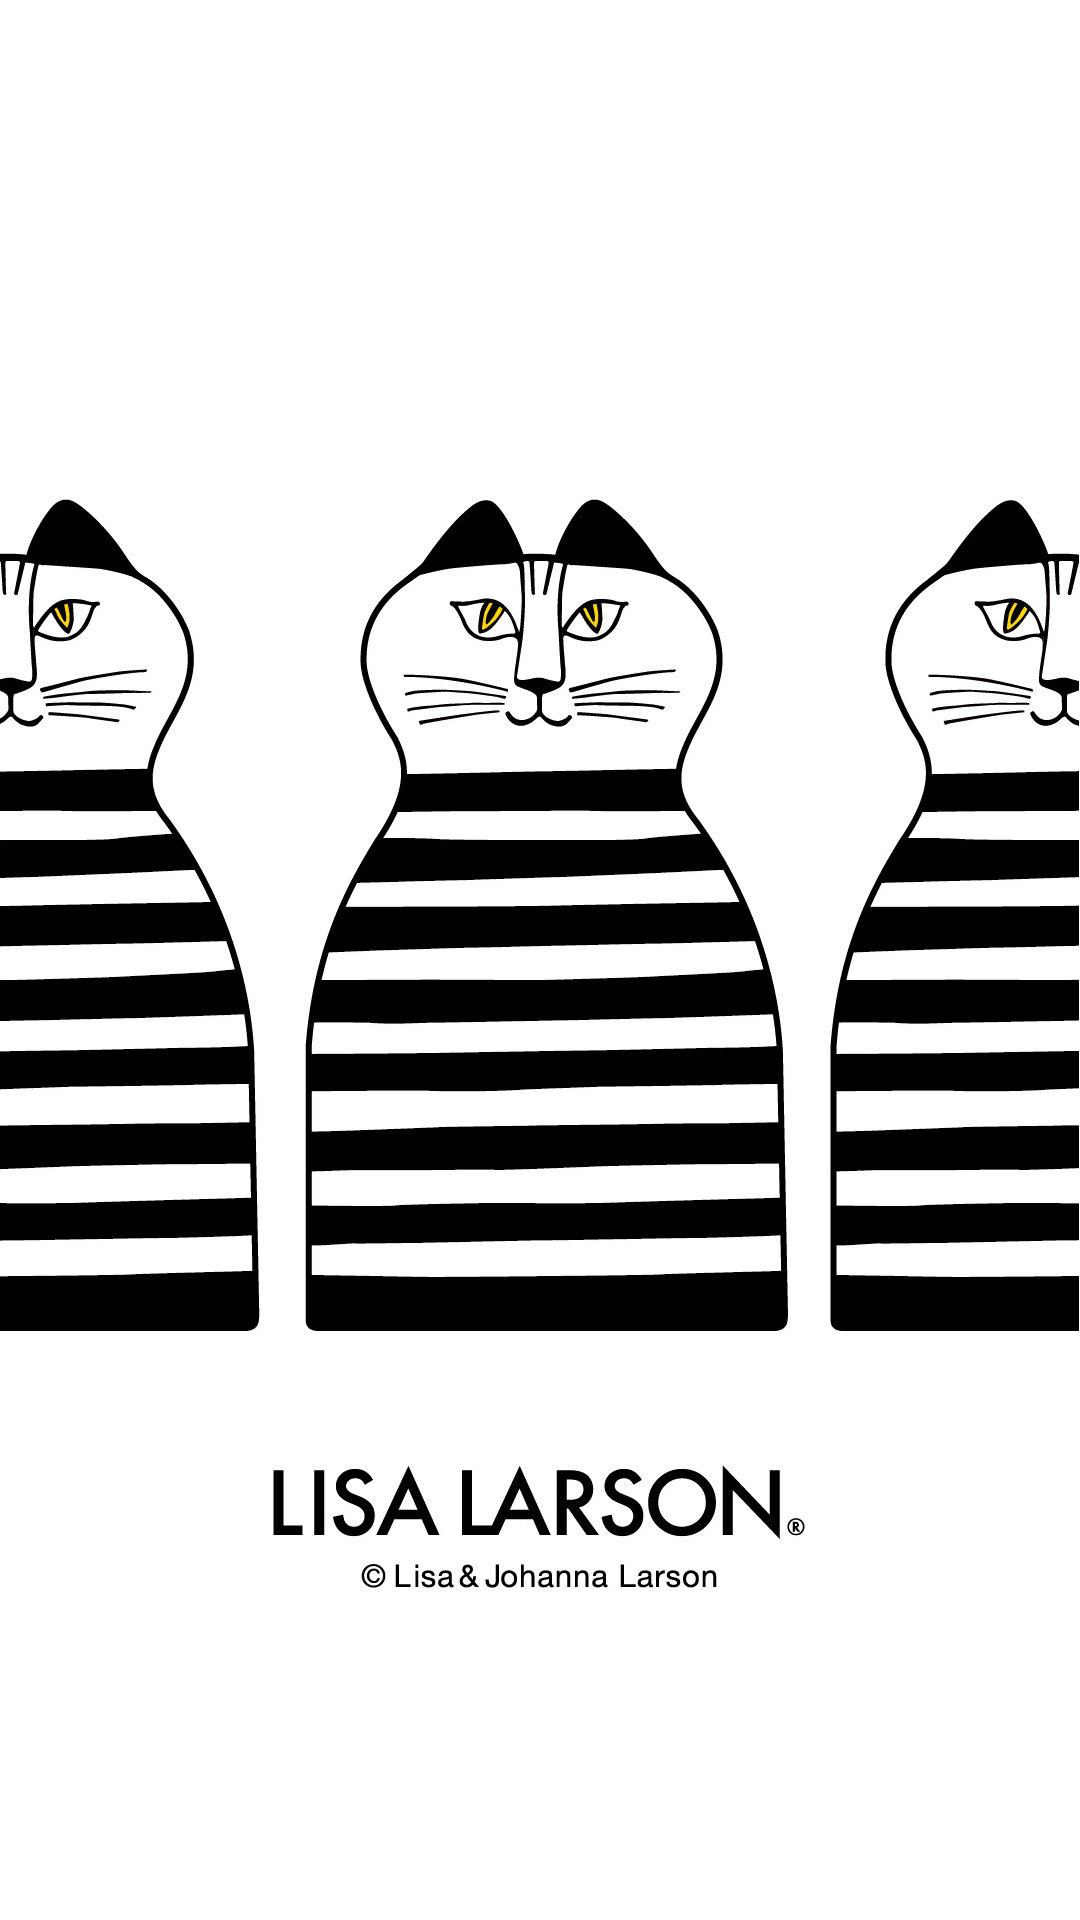 lisalarson01 - 18 Lisa Larson HQ Smartphone Wallpaper Collection